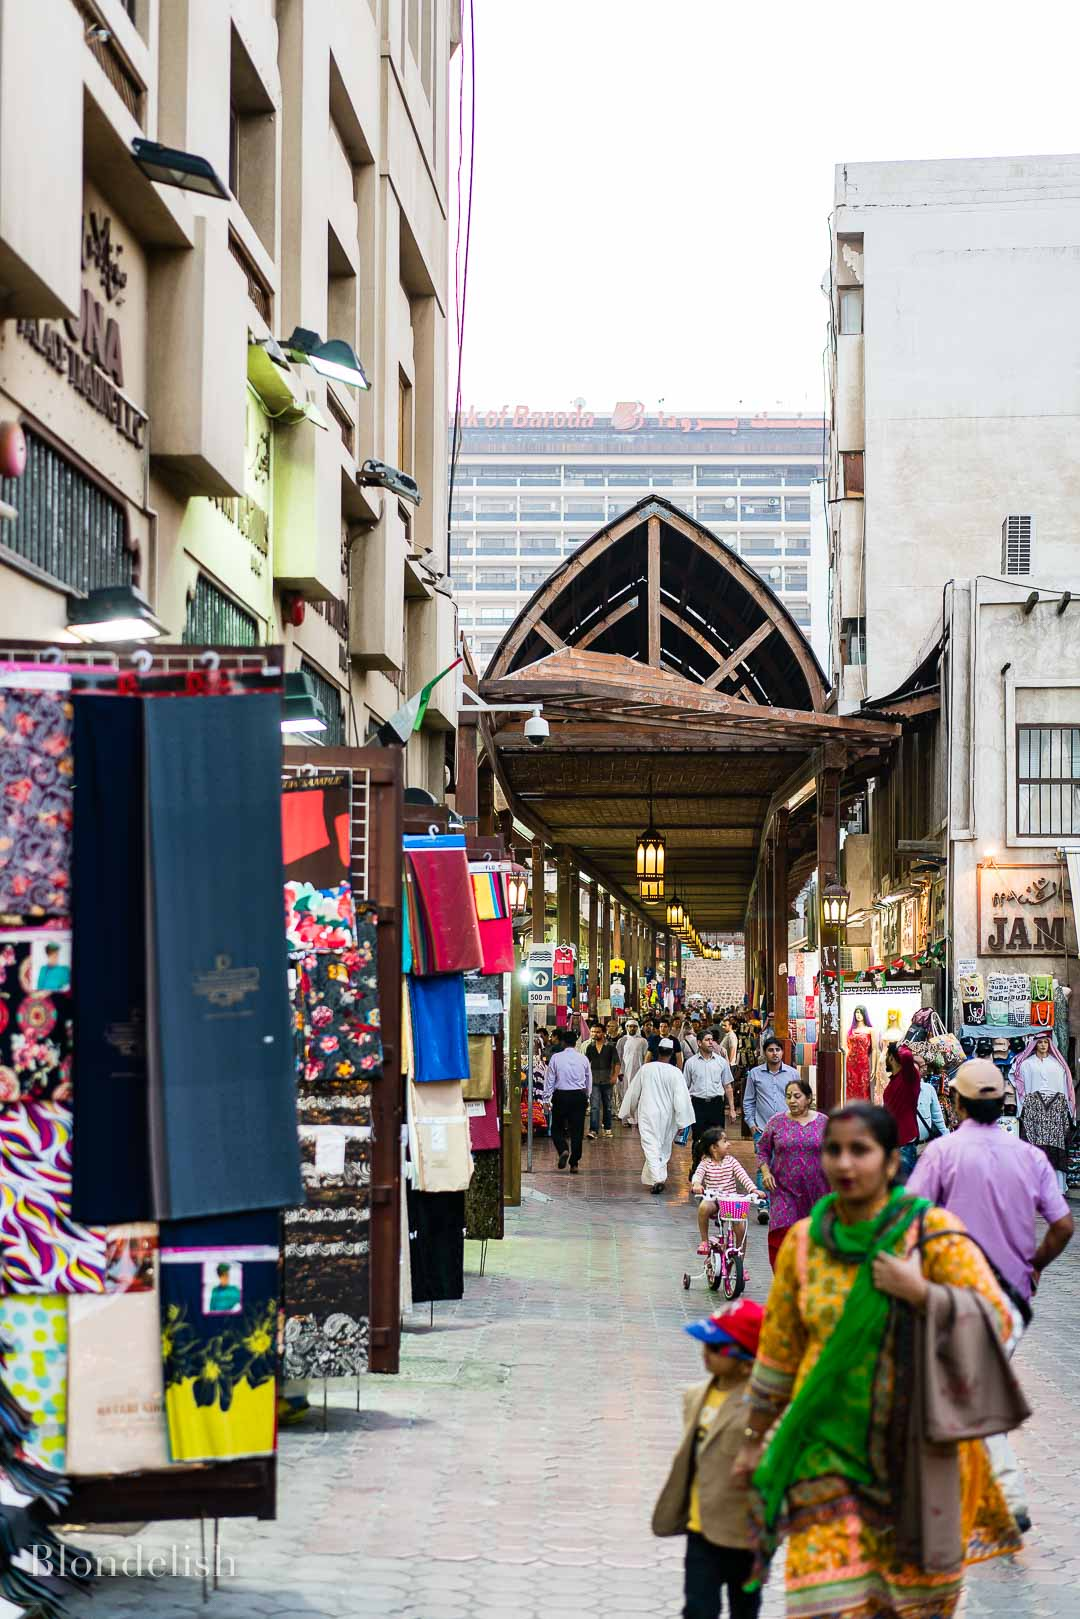 Dubai Textile Souk Market - Best Places to Visit in Dubai - Things to do in Dubai